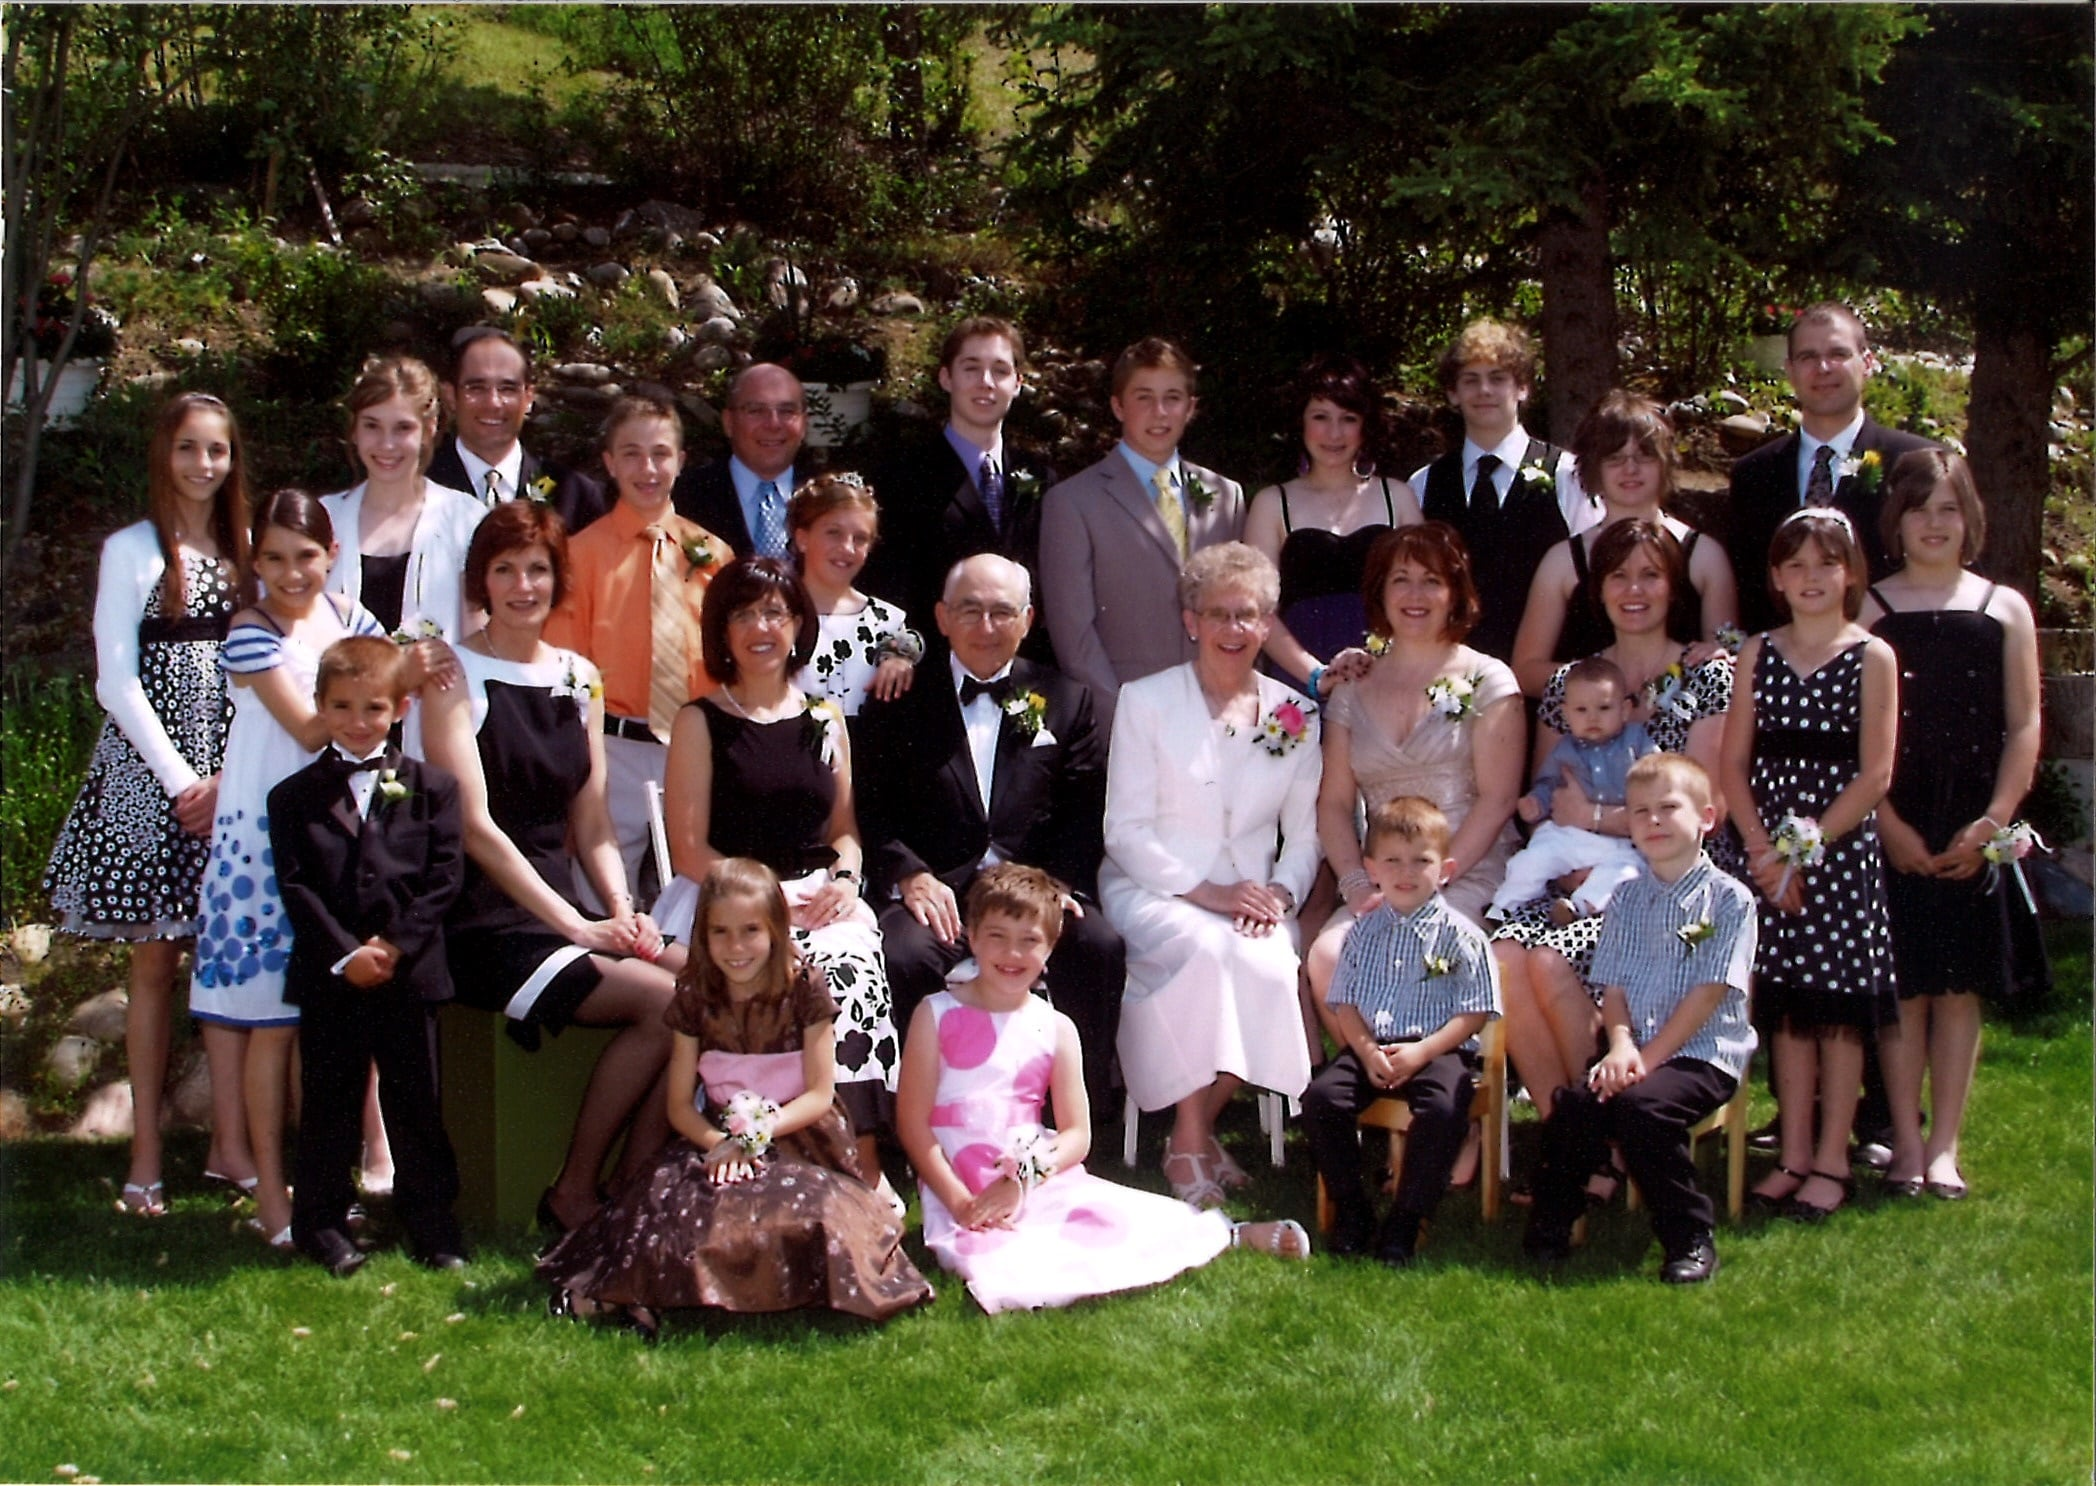 Frank Agnes Lovsin 50th Wedding Anniversary Picture min